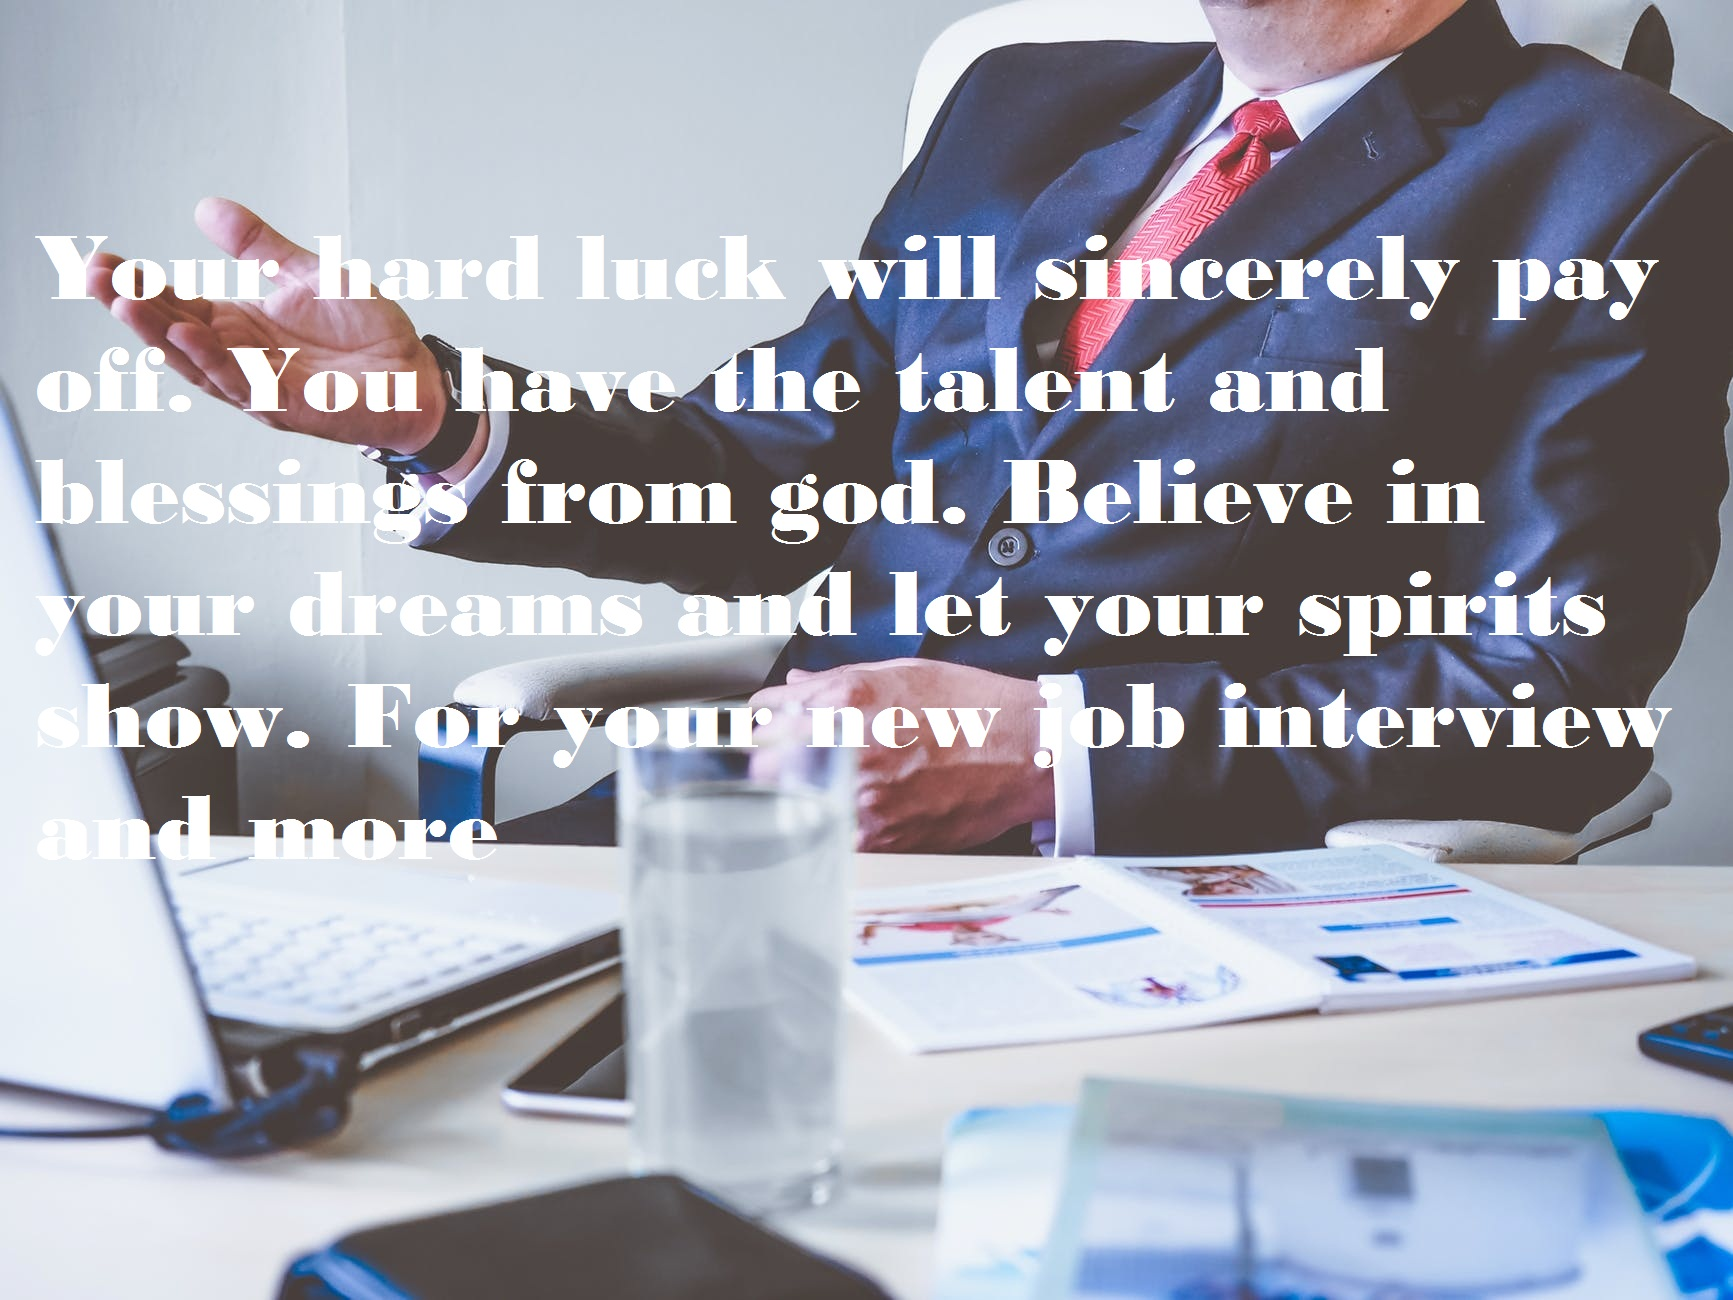 Best Wishes for Interview